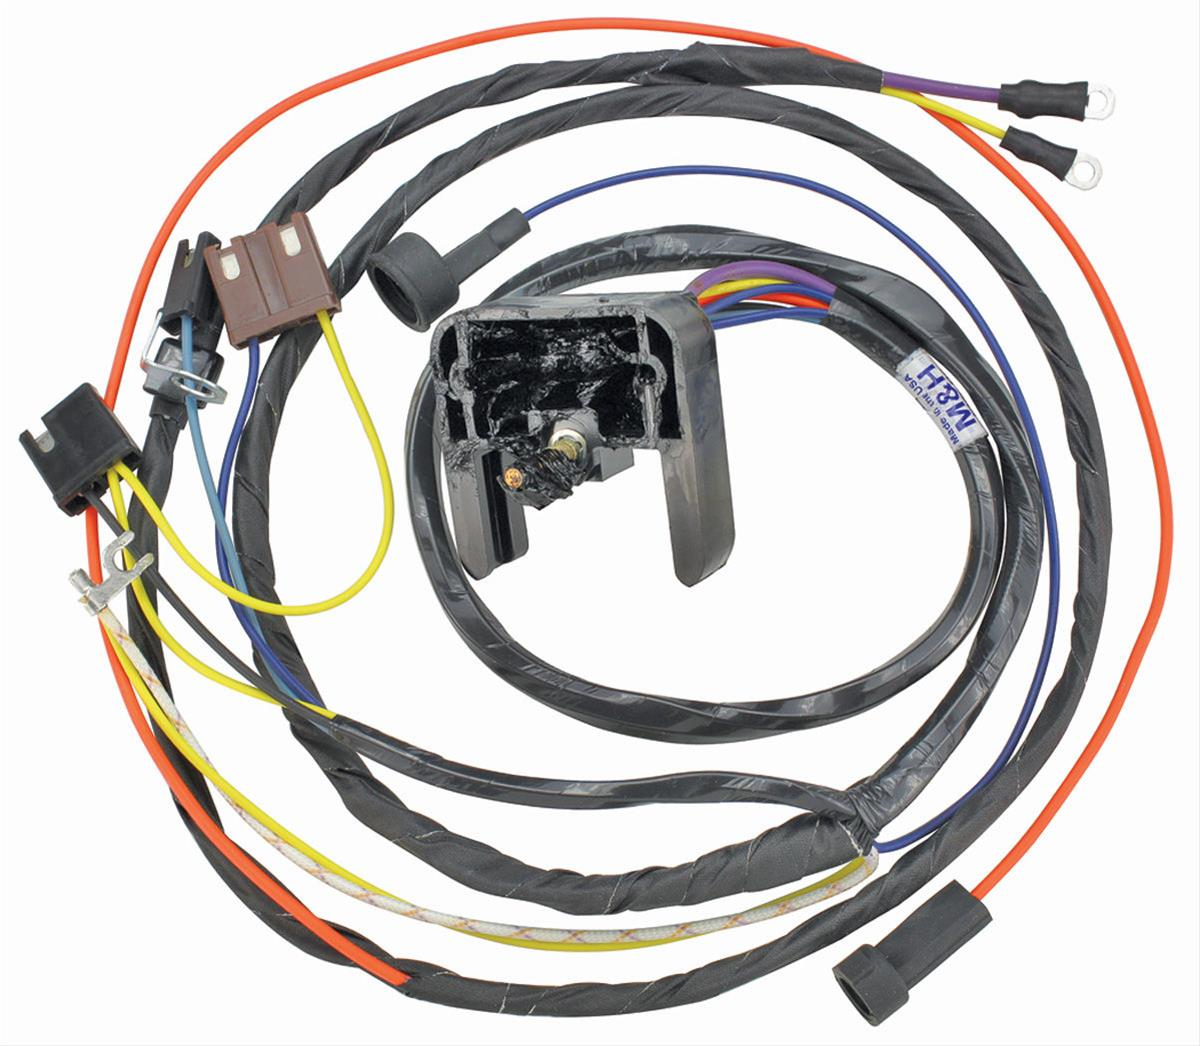 hight resolution of chevrolet el camino restoparts supplied engine wiring harnesses 11805 free shipping on orders over 99 at summit racing